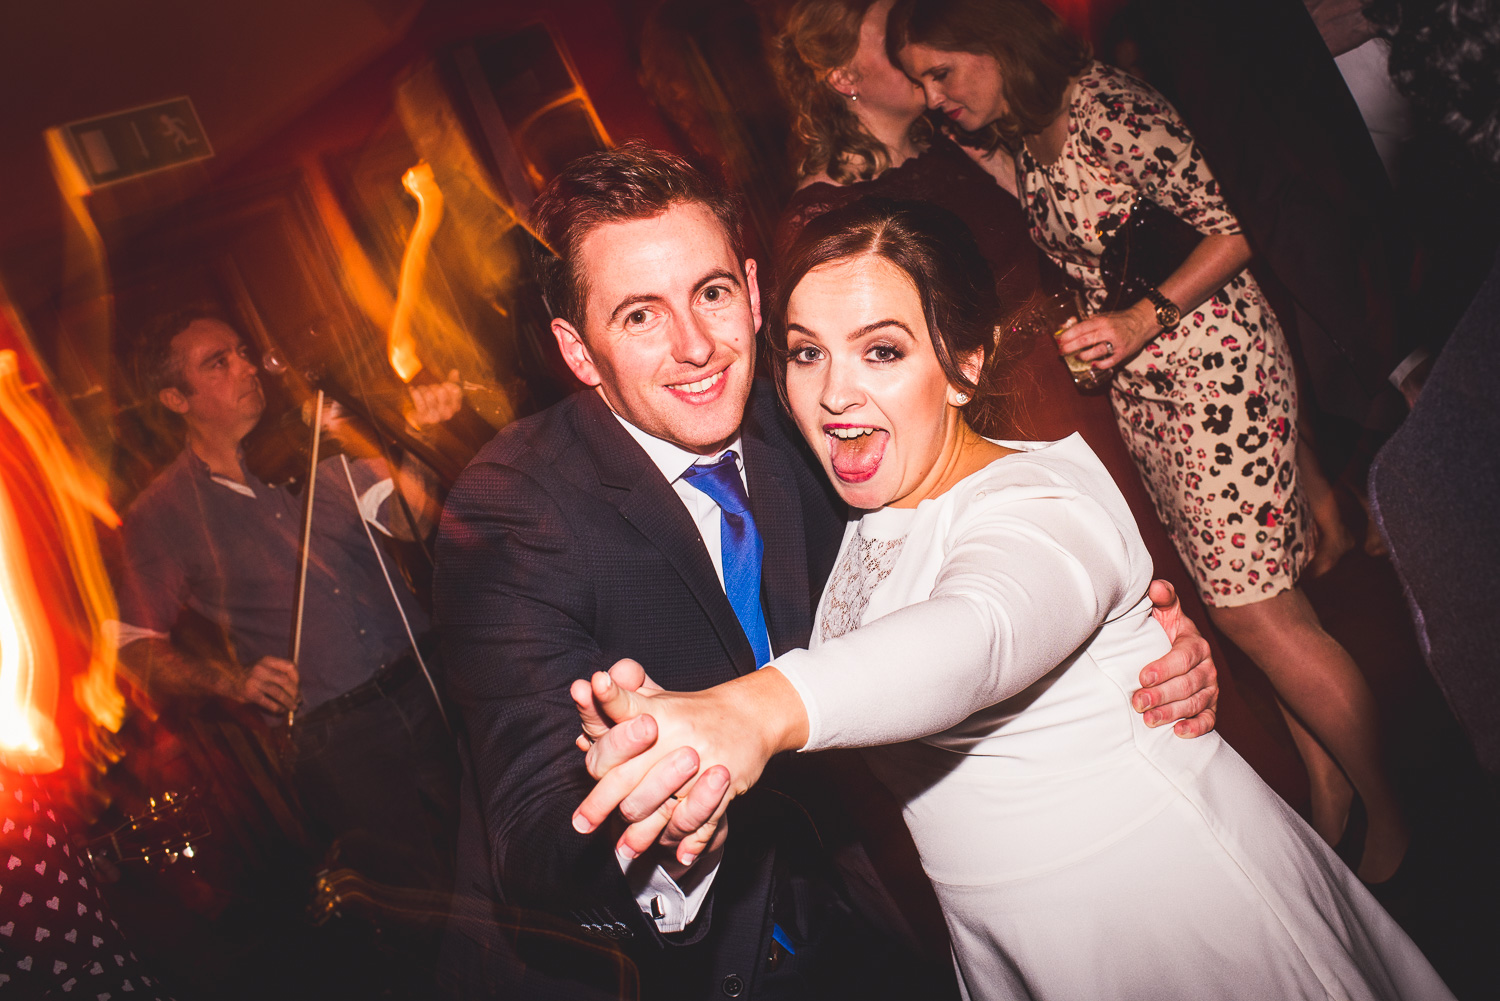 west-london-pub-wedding-75.jpg